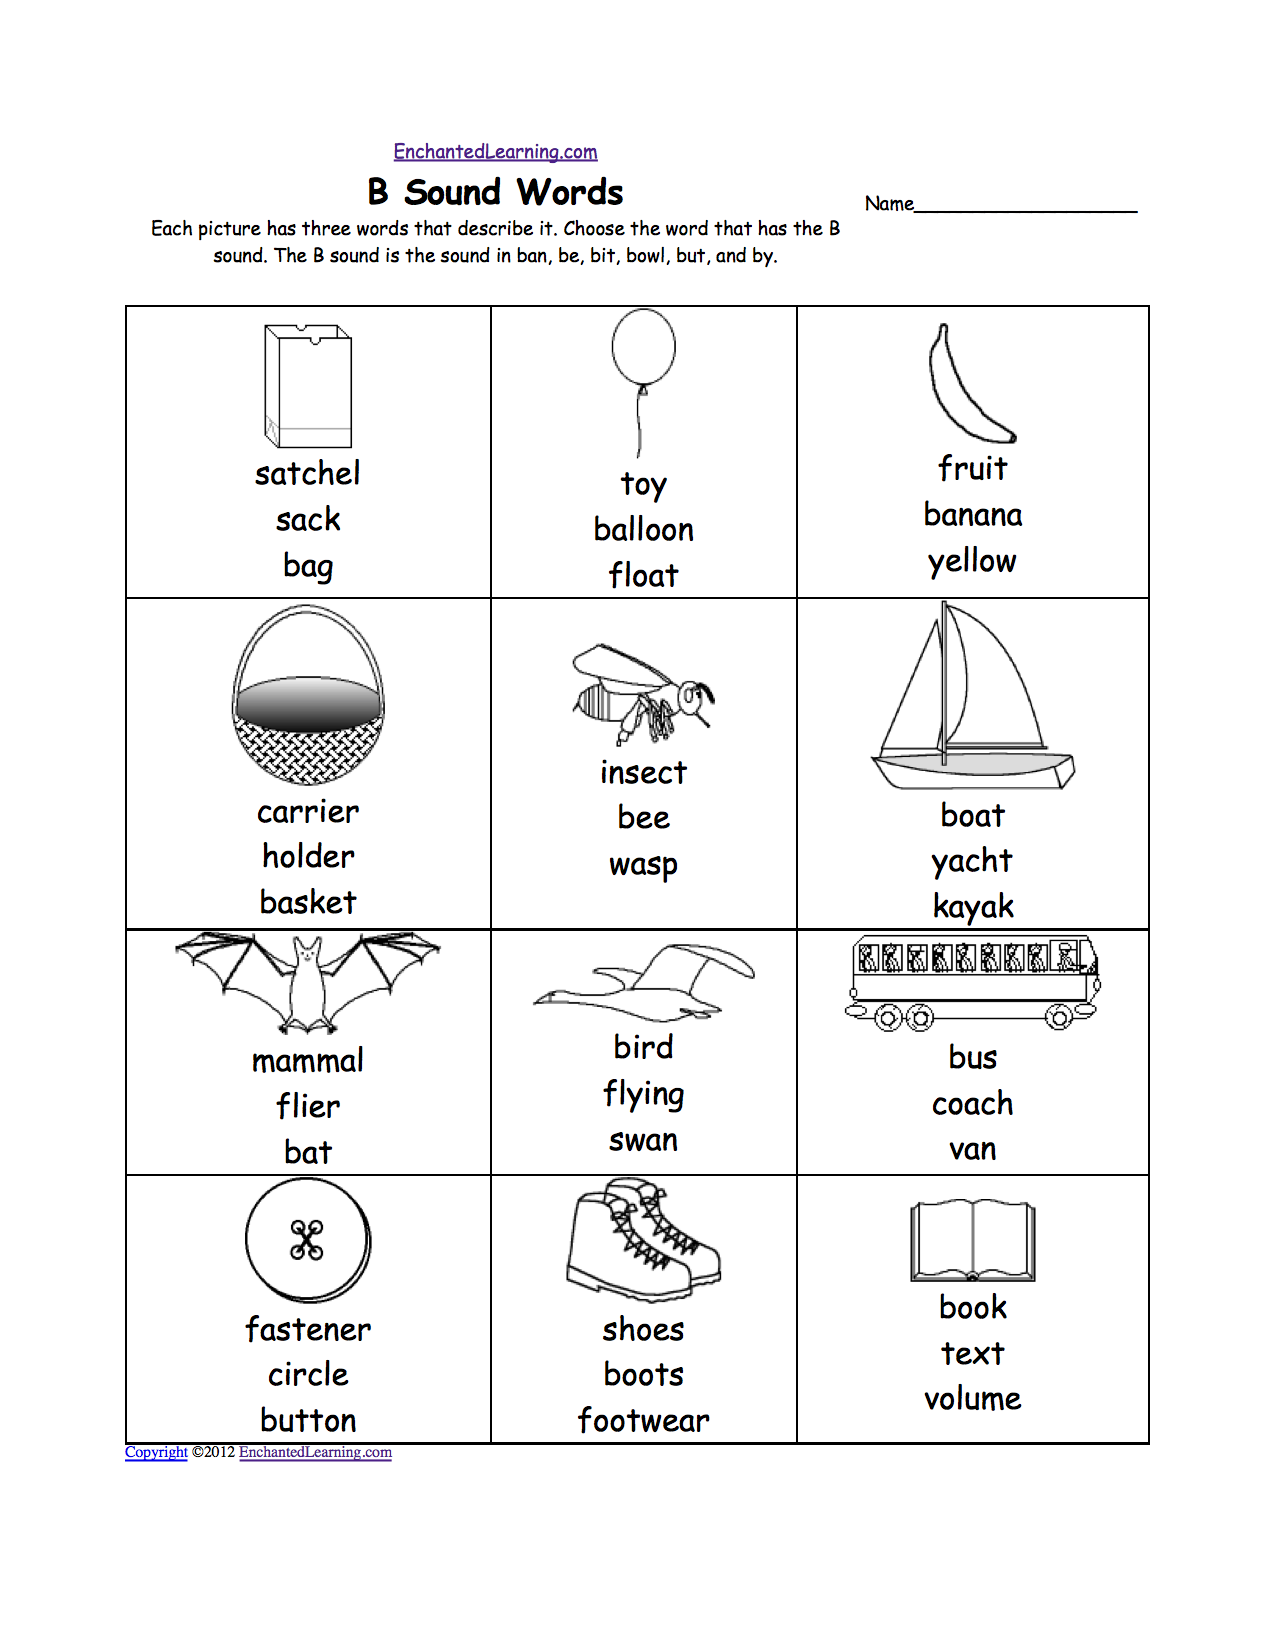 Aldiablosus  Splendid Phonics Worksheets Multiple Choice Worksheets To Print  With Gorgeous Quotbquot Sound Phonics Worksheet Multiple Choice Each Picture Has Three Words That Describe It Choose The Word That Has A Quotbquot Sound The Quotbquot Sound Is The Sound  With Cute Grade  Printable Worksheets Also Creative Writing Worksheets For Grade  In Addition Ks Punctuation Worksheets And Roman Gods Worksheet As Well As Victorian Handwriting Worksheets Additionally Alliteration Worksheets For High School From Enchantedlearningcom With Aldiablosus  Gorgeous Phonics Worksheets Multiple Choice Worksheets To Print  With Cute Quotbquot Sound Phonics Worksheet Multiple Choice Each Picture Has Three Words That Describe It Choose The Word That Has A Quotbquot Sound The Quotbquot Sound Is The Sound  And Splendid Grade  Printable Worksheets Also Creative Writing Worksheets For Grade  In Addition Ks Punctuation Worksheets From Enchantedlearningcom